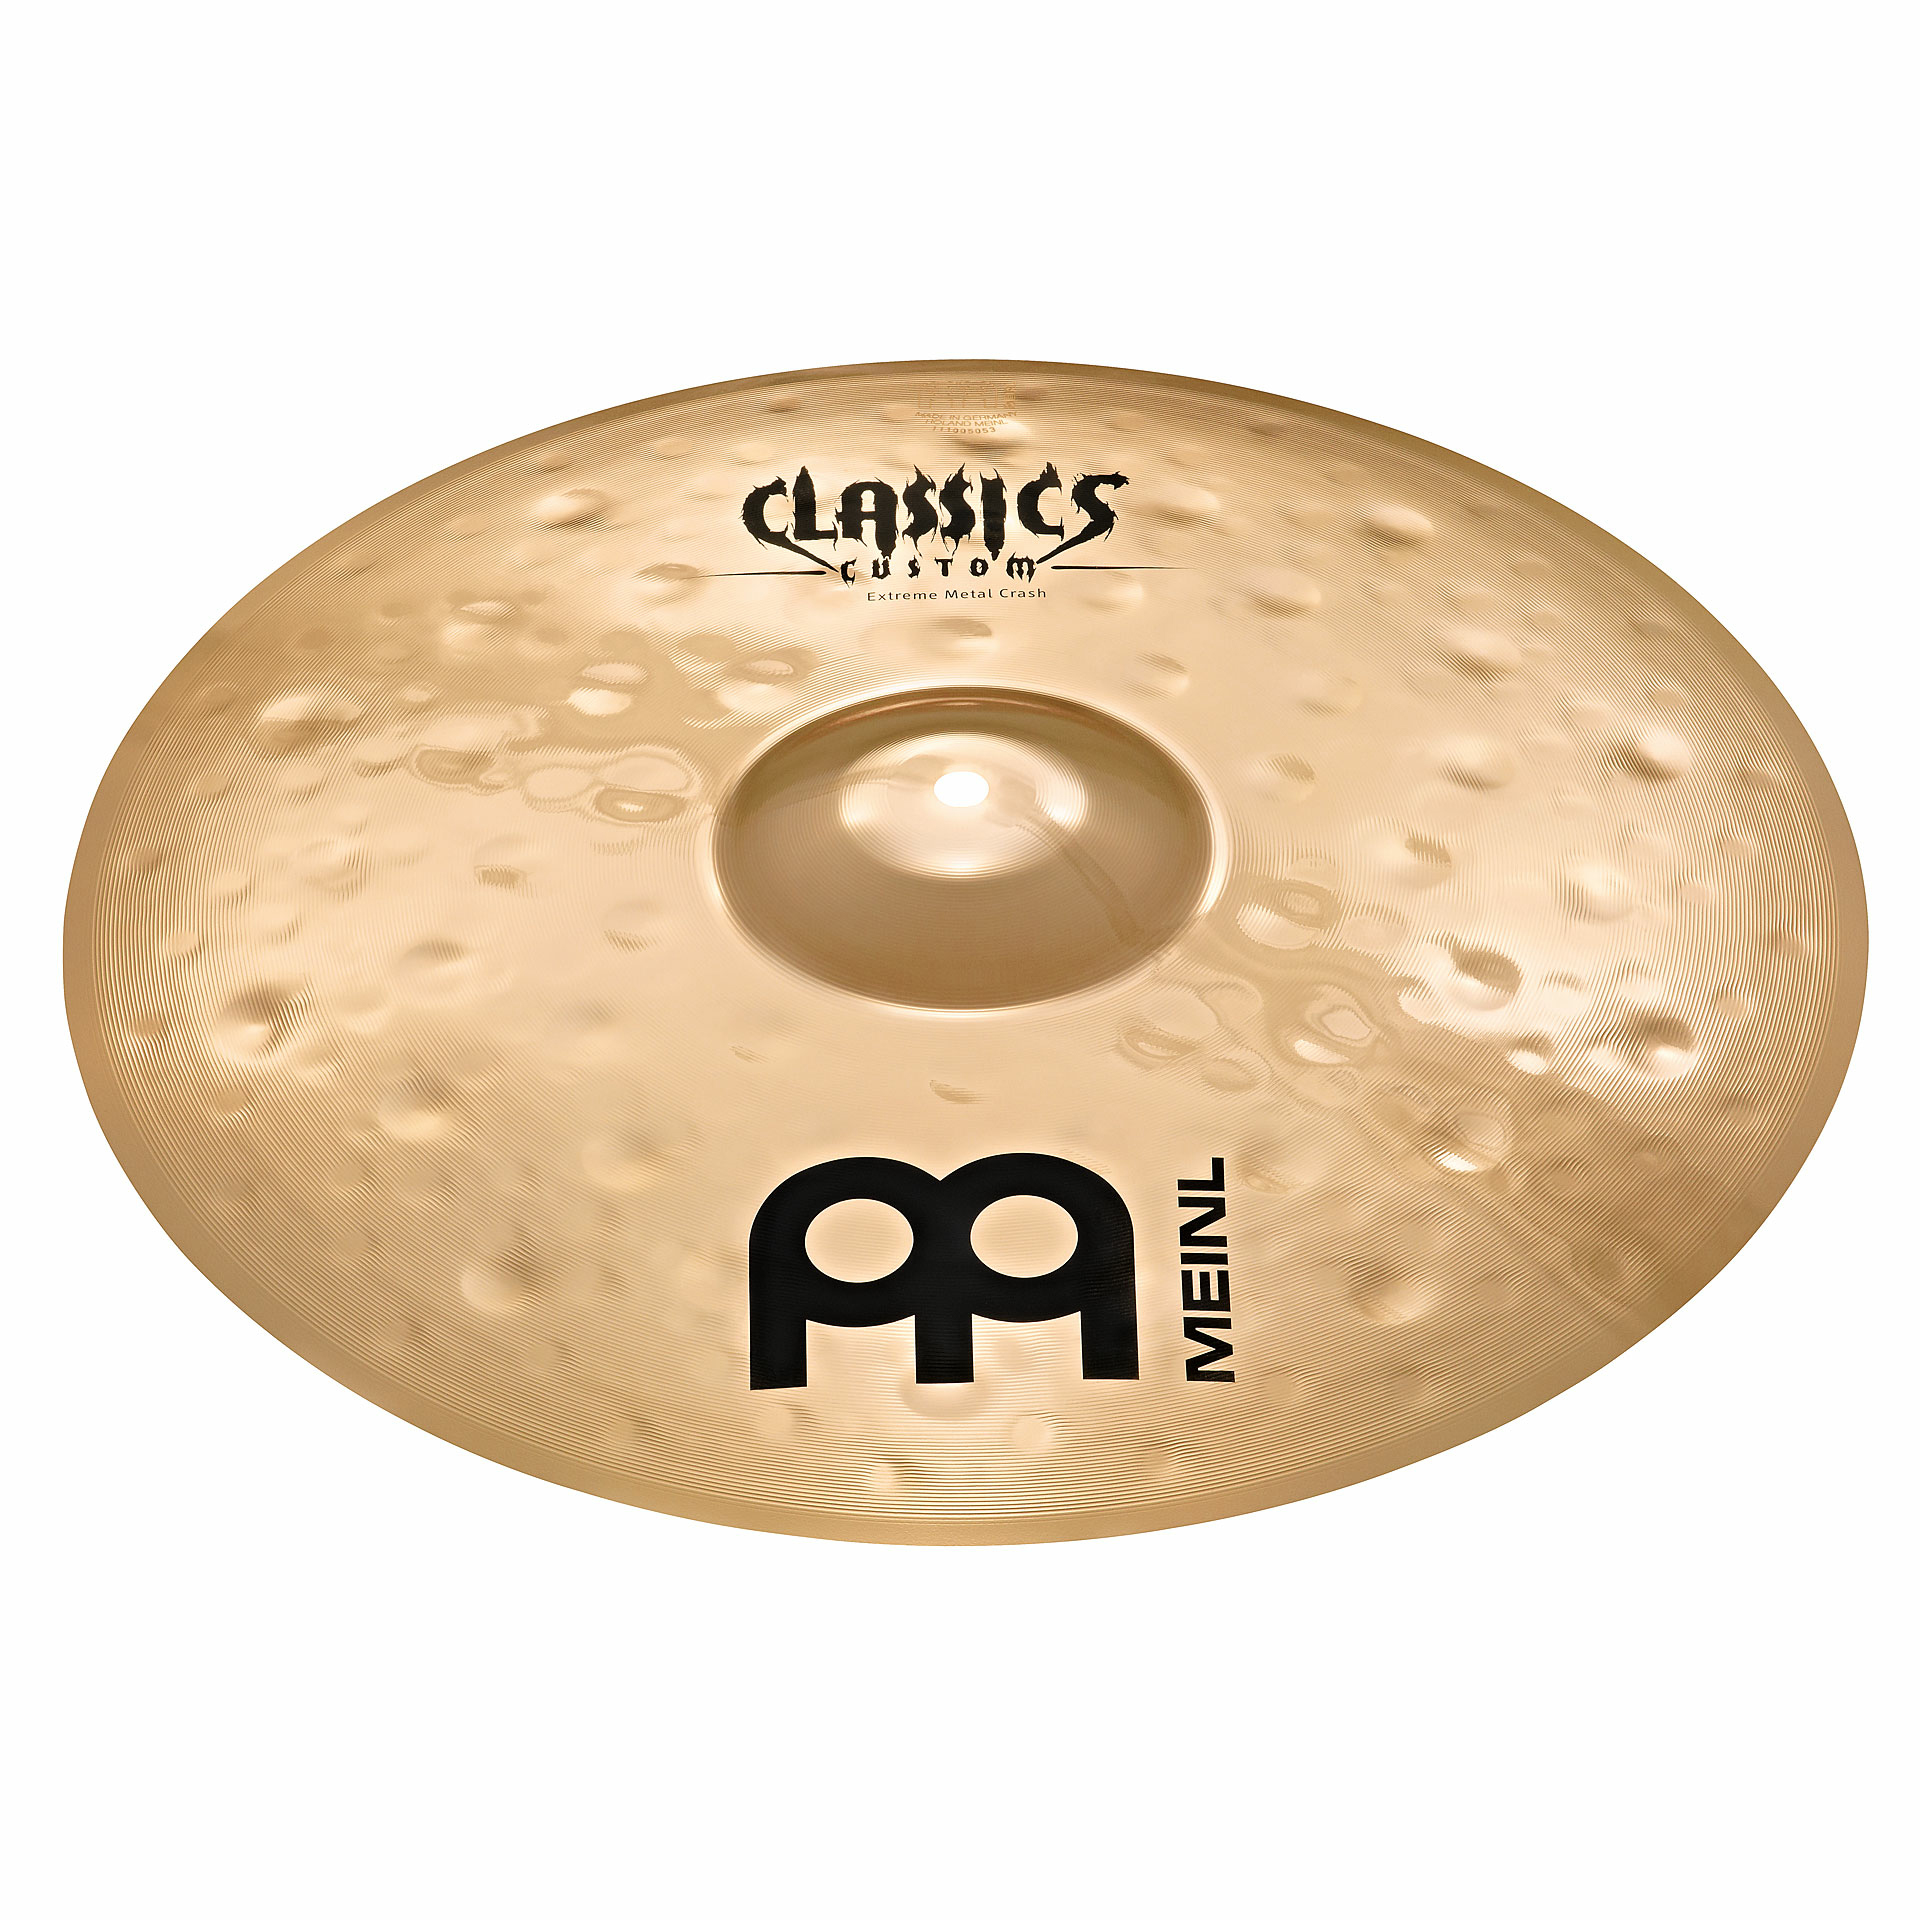 "Meinl 19"" Classics Custom Extreme Metal Crash Cymbal"